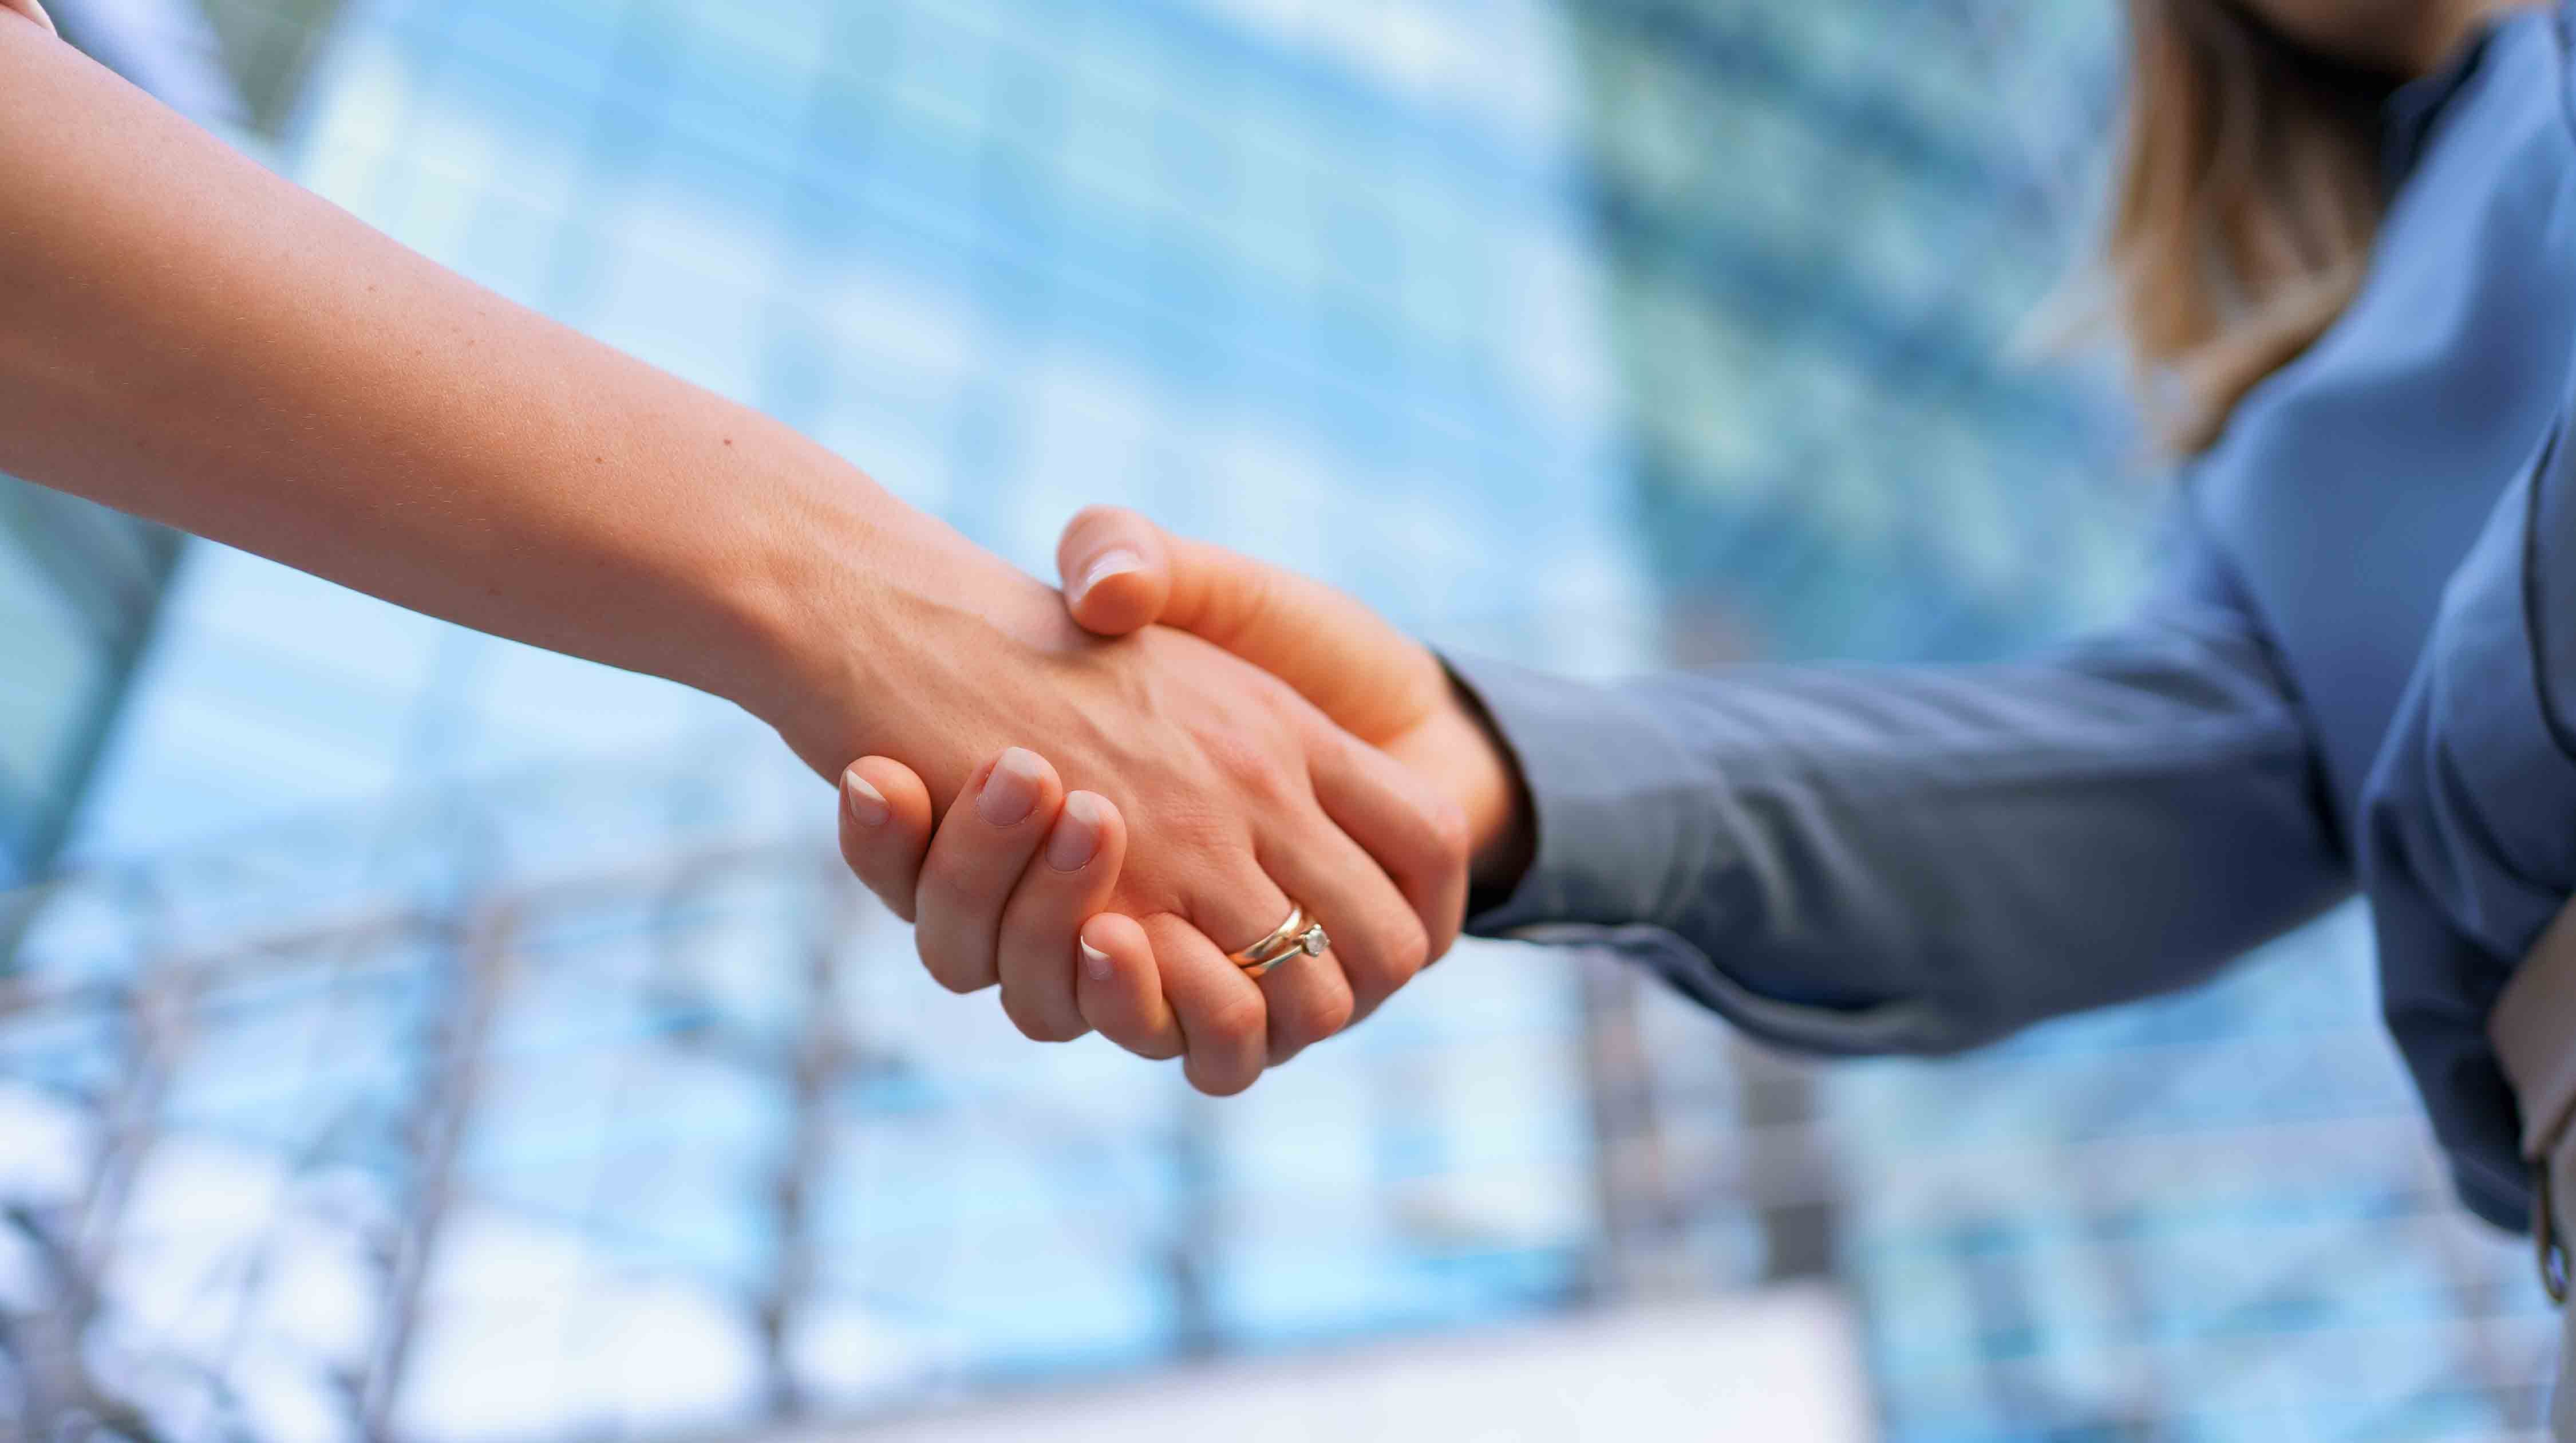 woman-handshaking-outdoors-modern-glass-business-building-close-up-picture-1.jpg